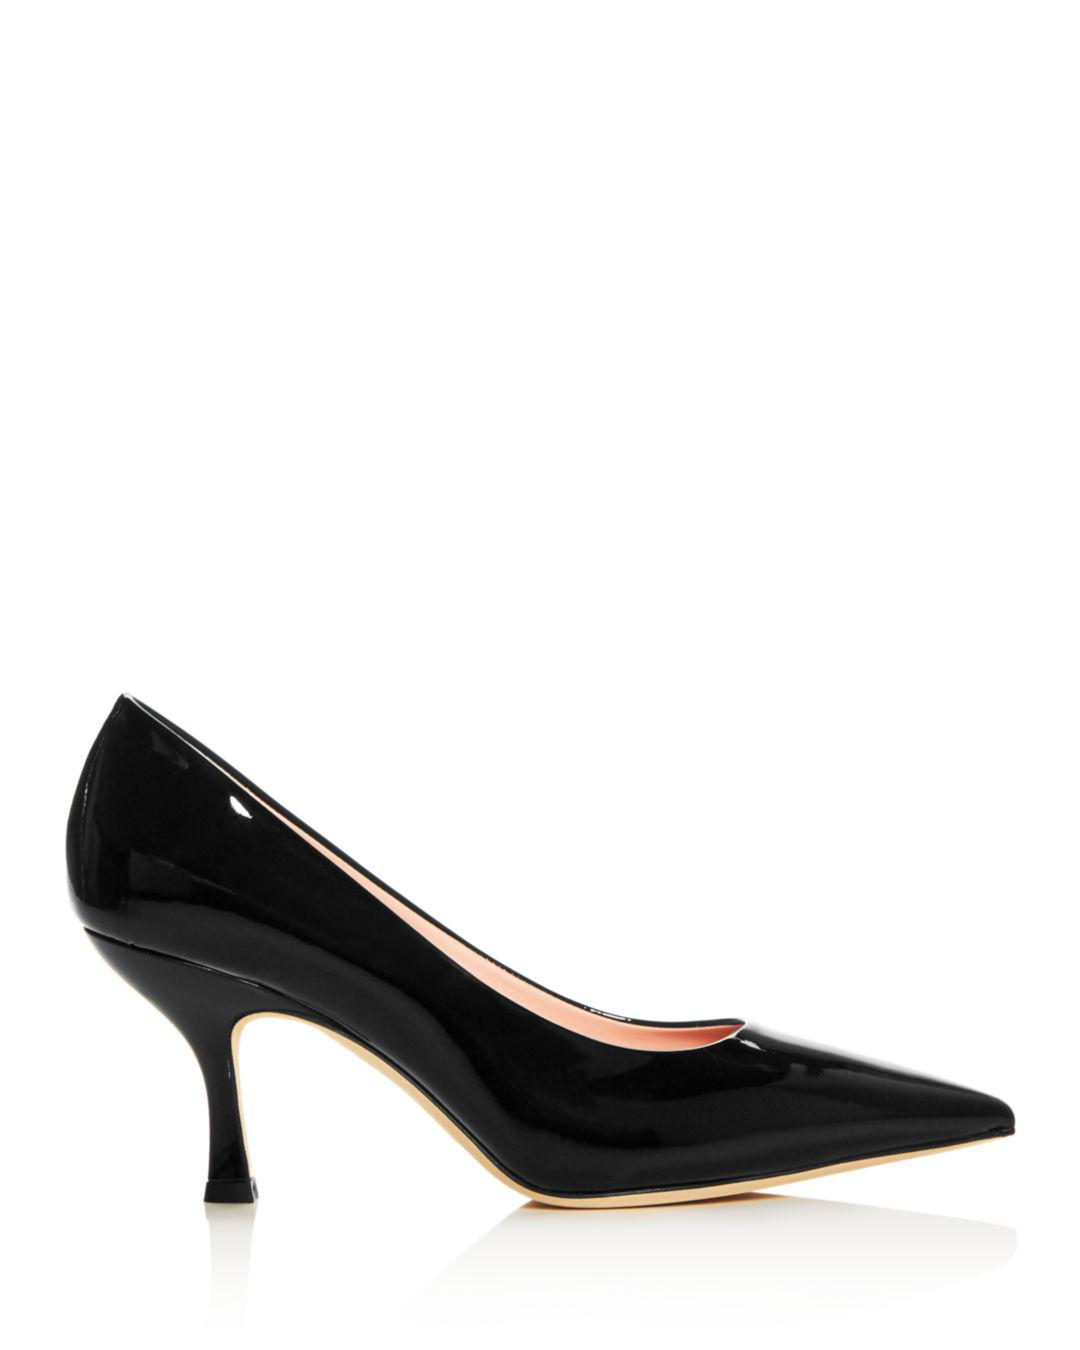 9409dd2a8cb7 Lyst - Kate Spade Women s Sonia Patent Leather Kitten-heel Pumps in Black